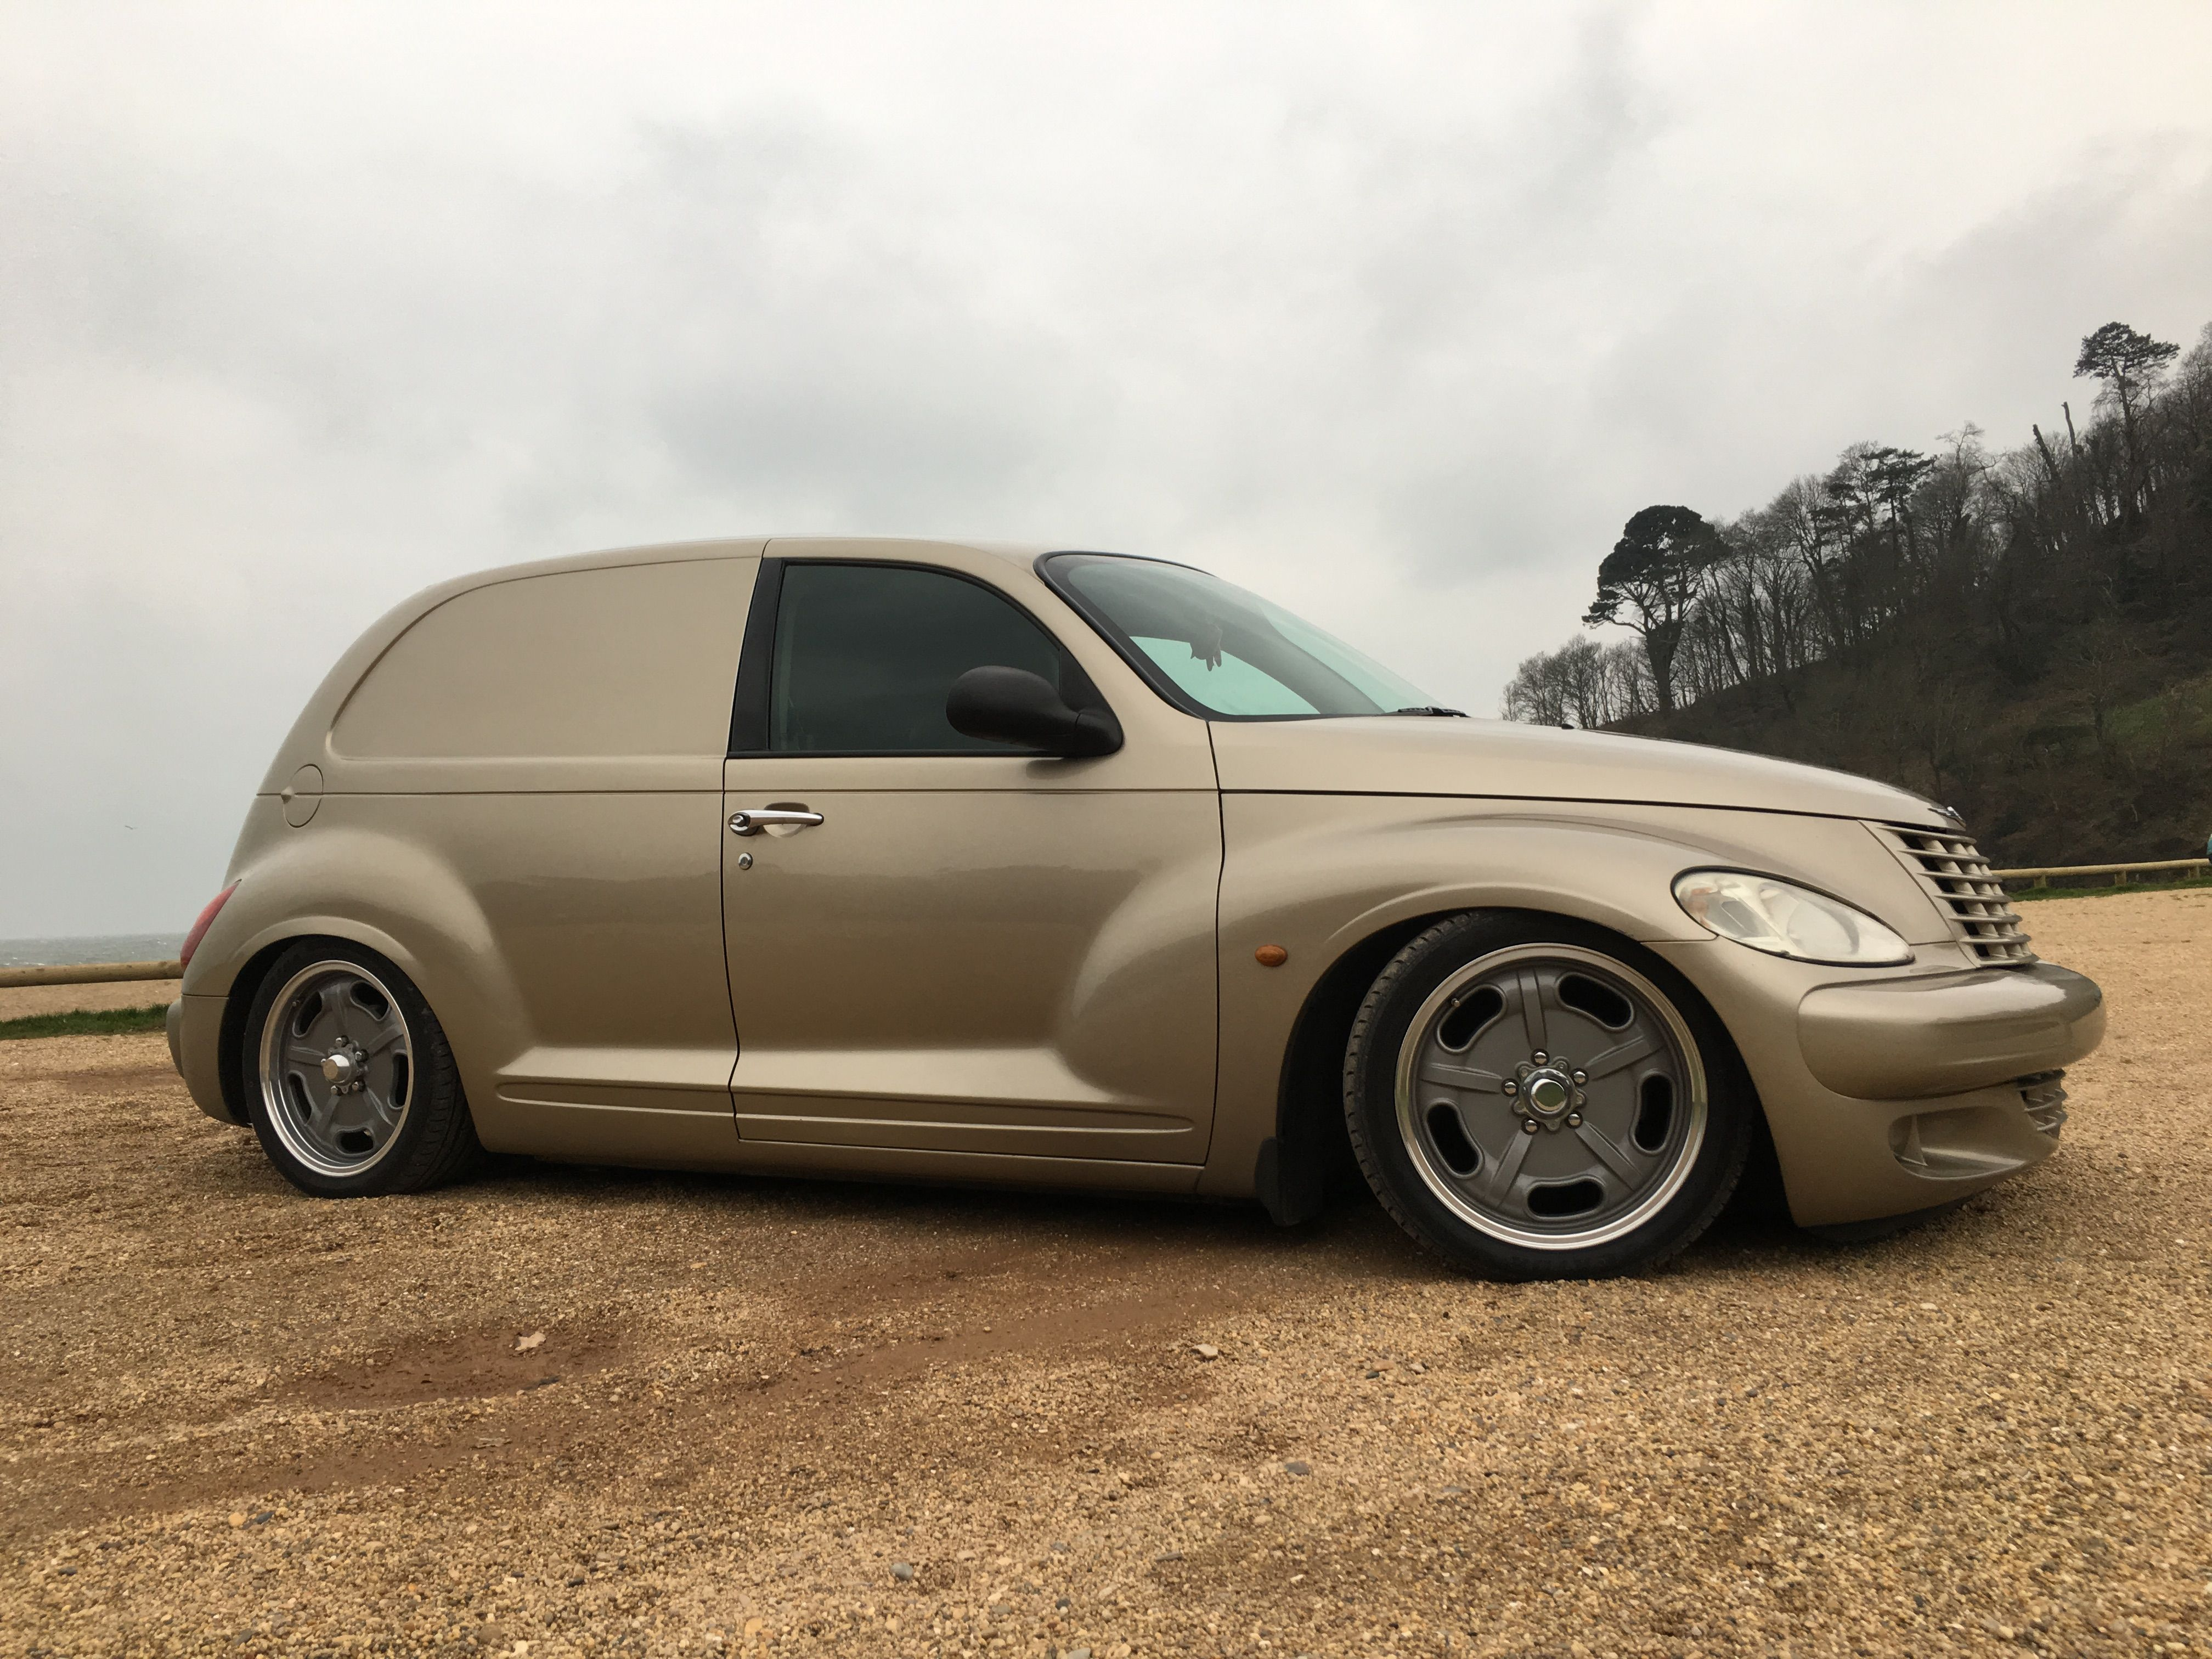 Bagged Pt Cruiser Panel Van Standard Delivery Stanced Wagon Chrysler Chevy Vans